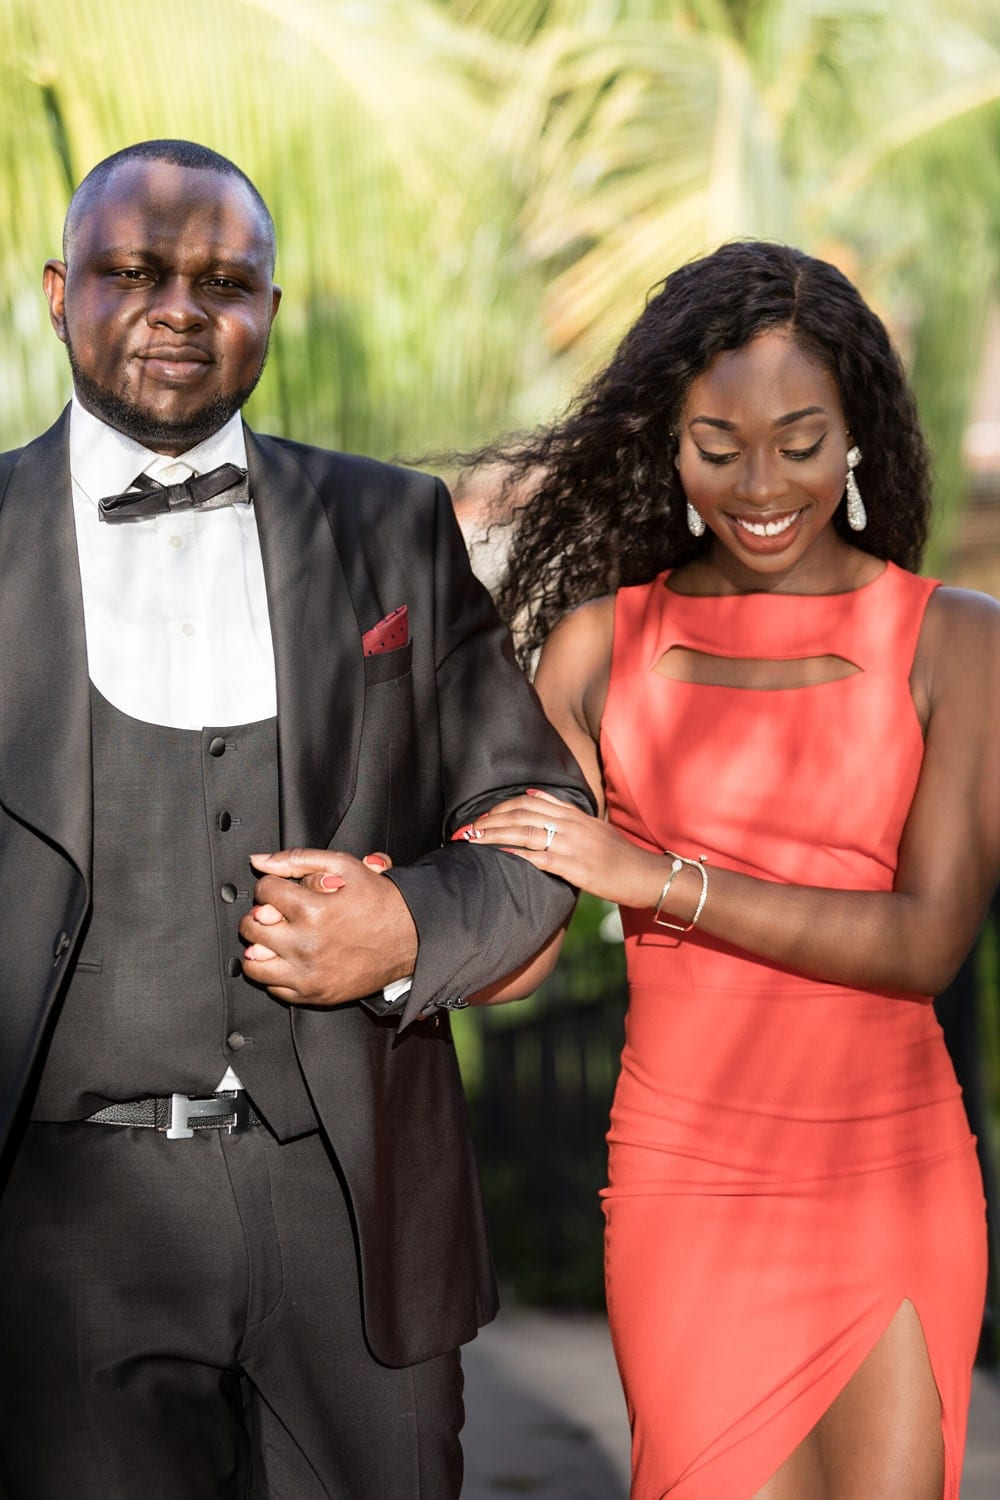 Just engaged couple walking arm in arm and smiling.